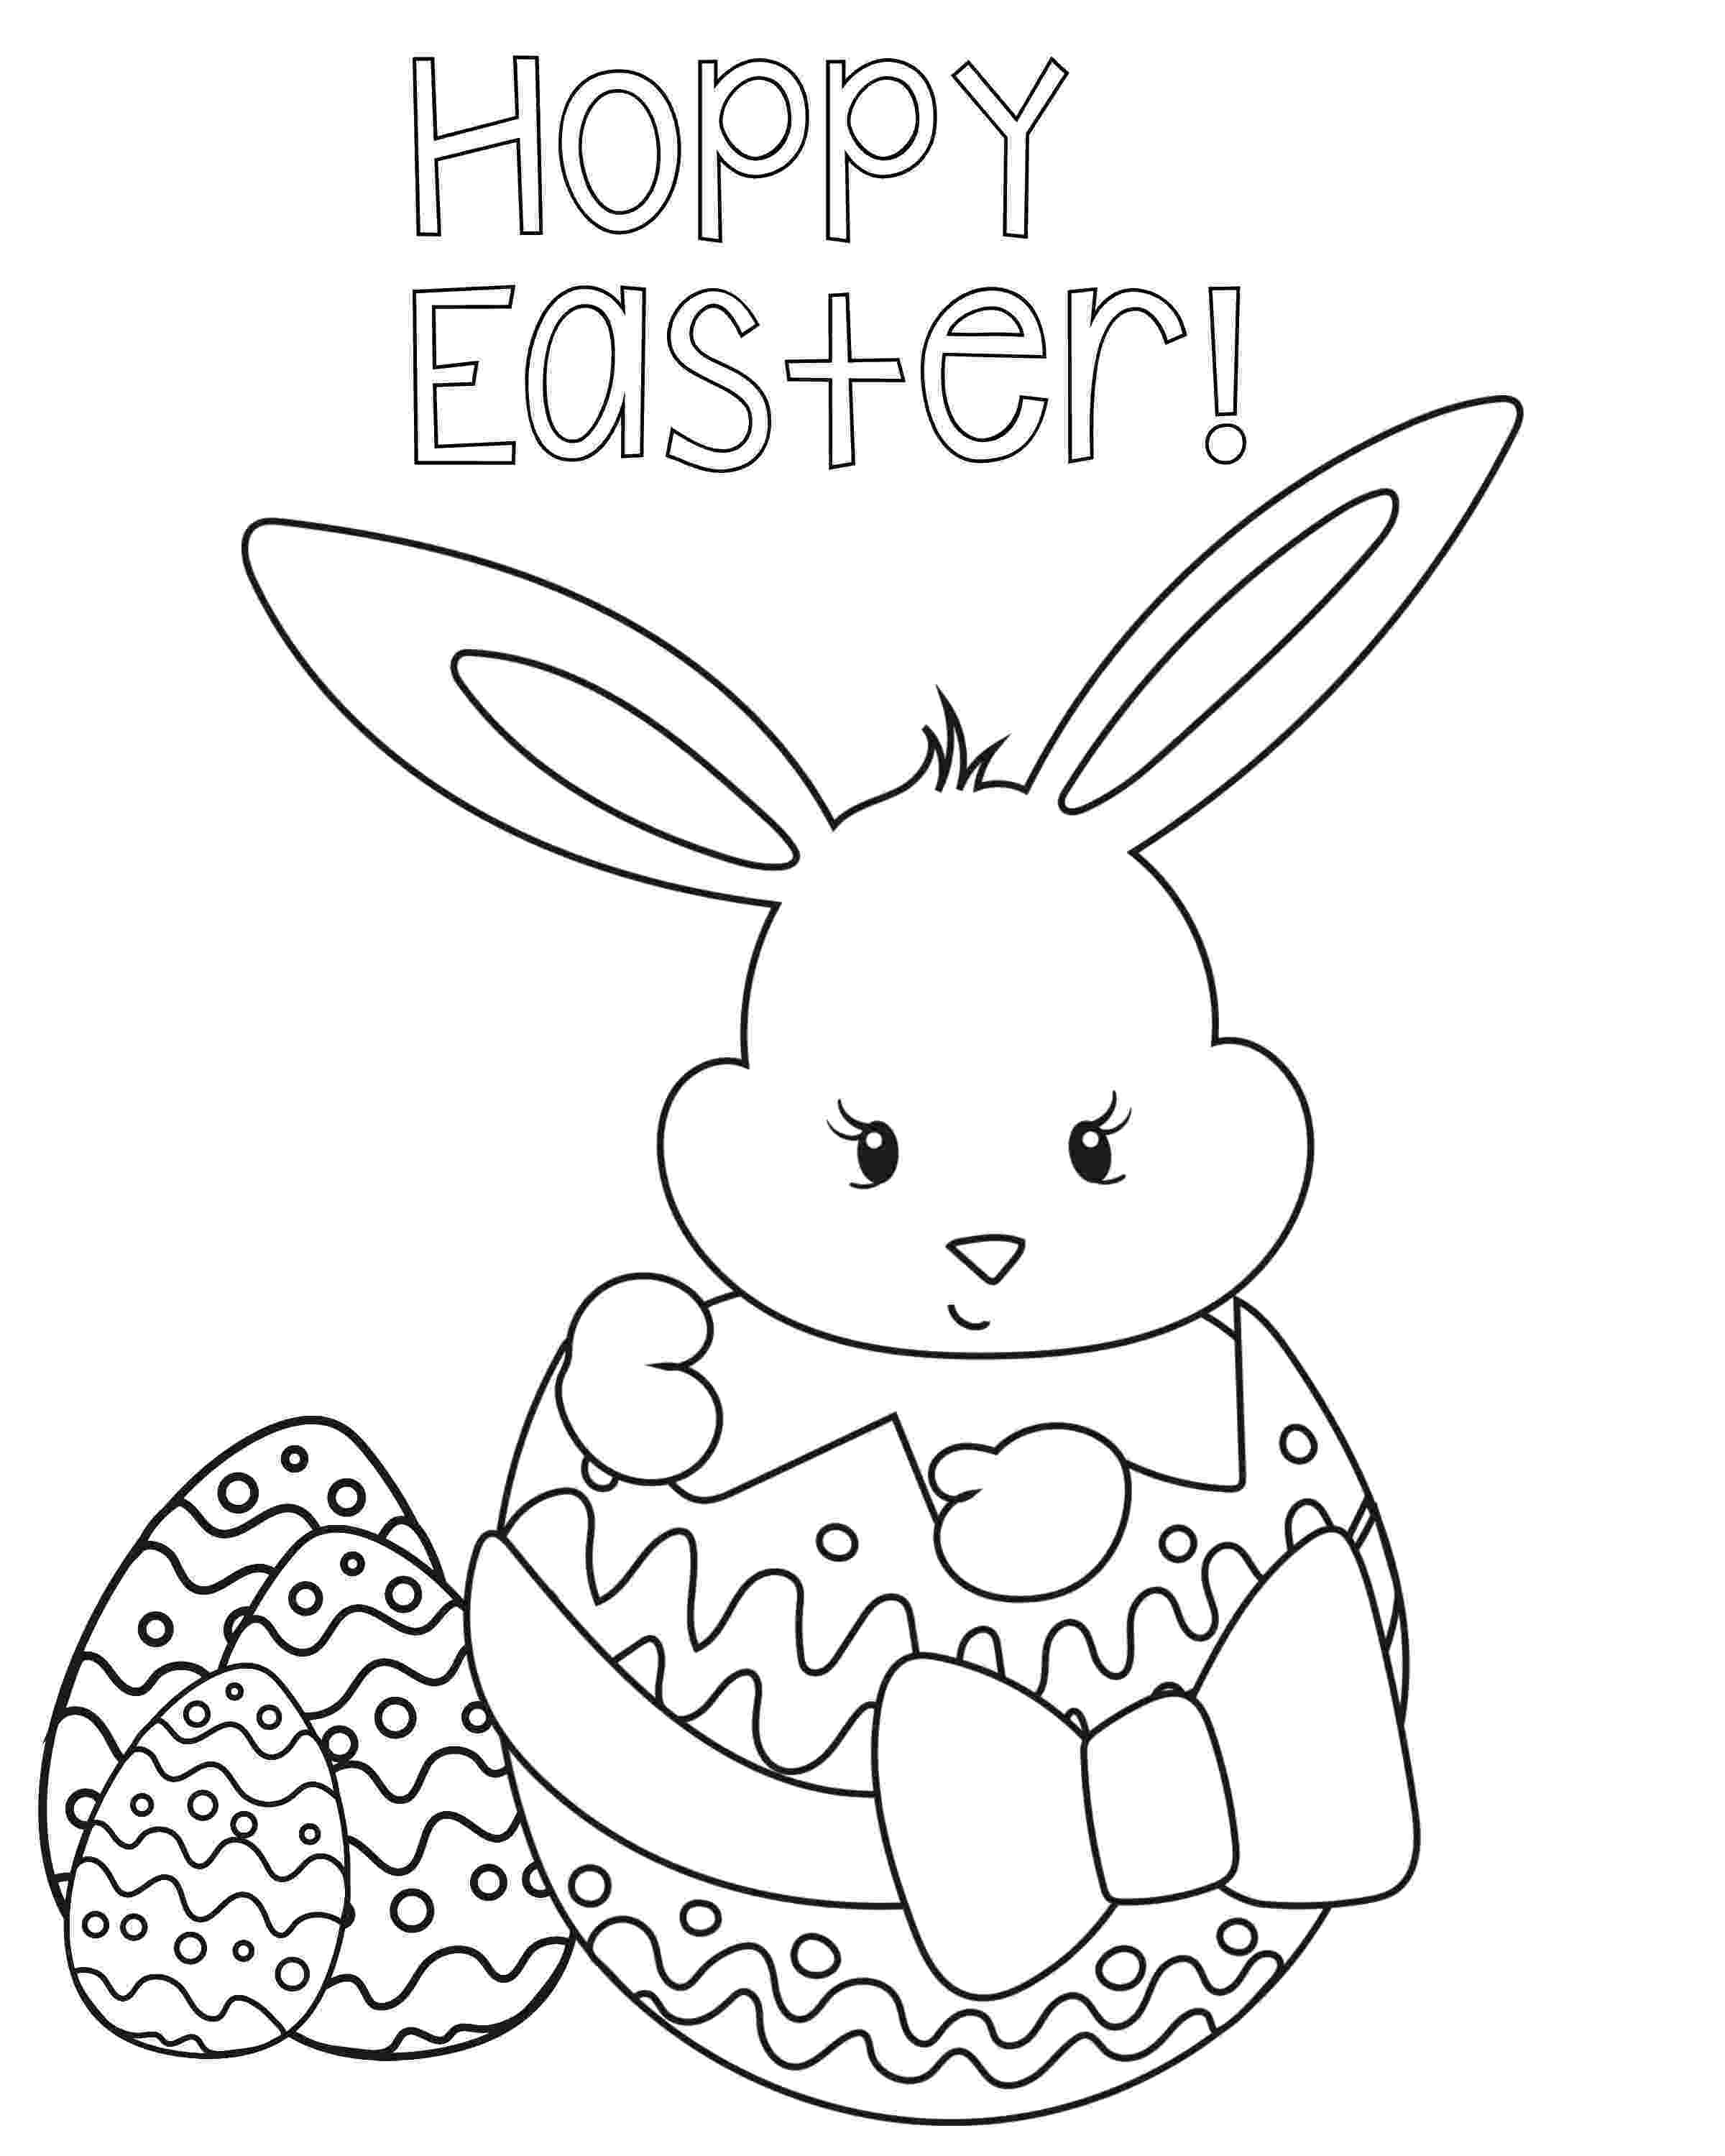 printable colouring sheets for easter transmissionpress easter coloring pages free easter for easter colouring printable sheets